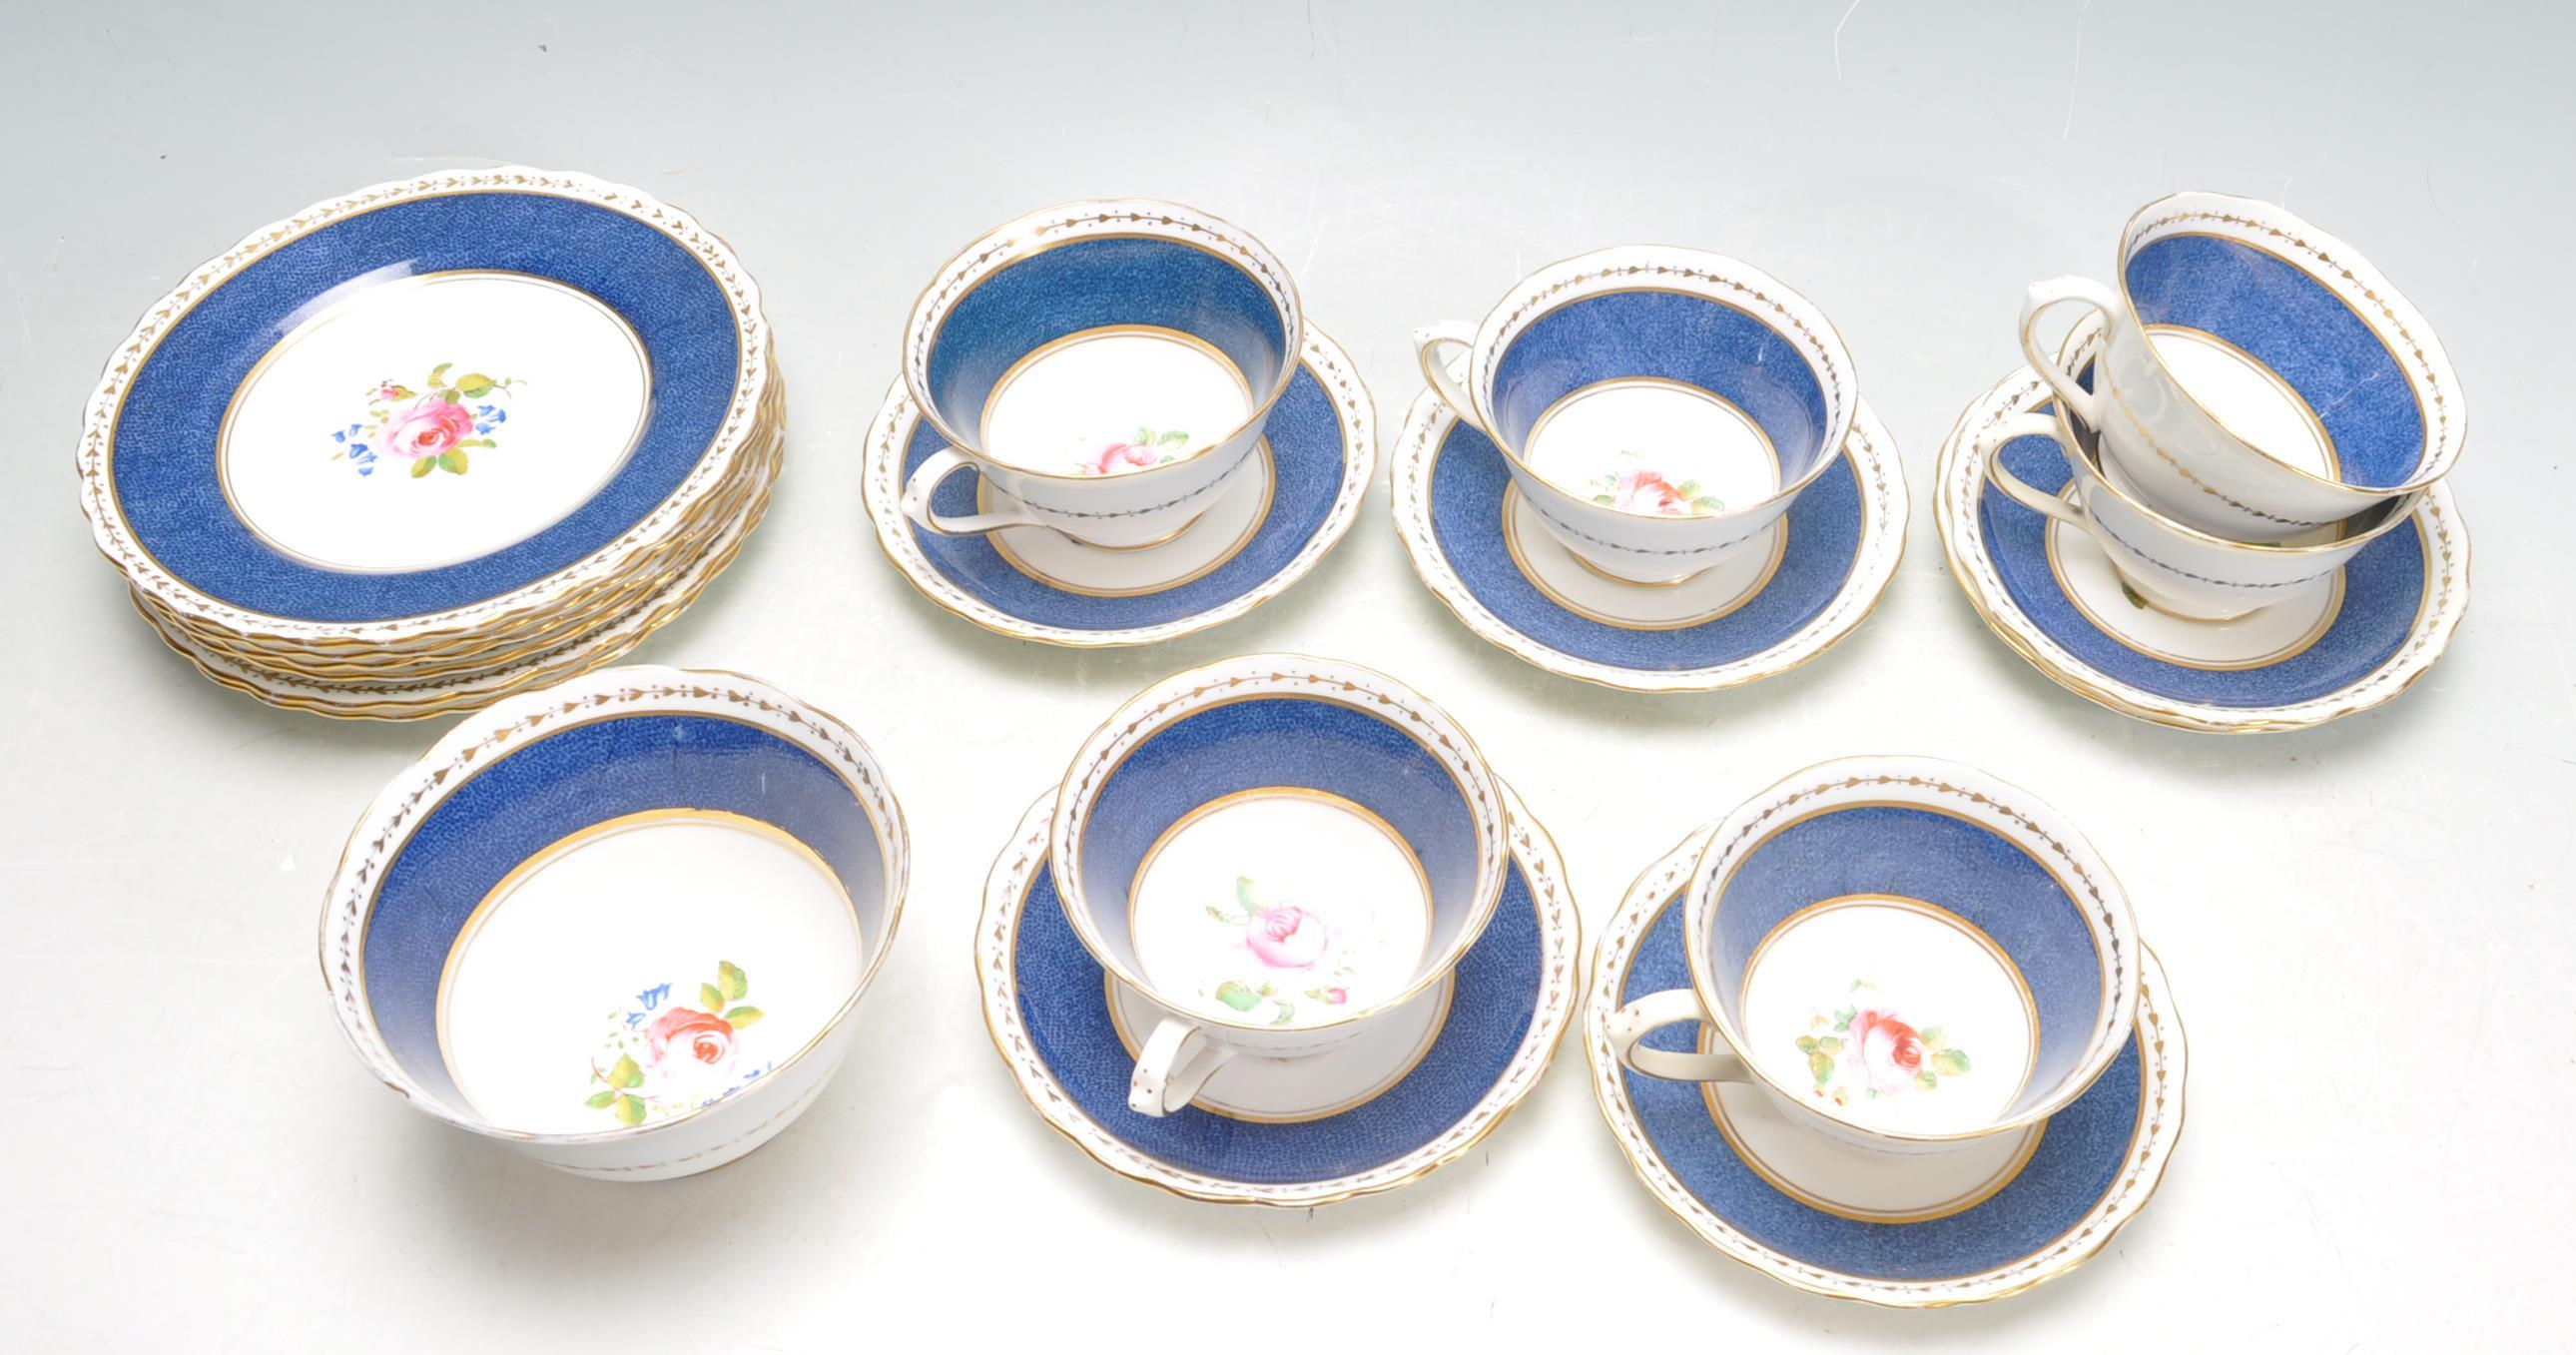 COLLECTION OF NEW CHELSEA STAFFORDSHIRE TEA SERVICE. - Image 2 of 4